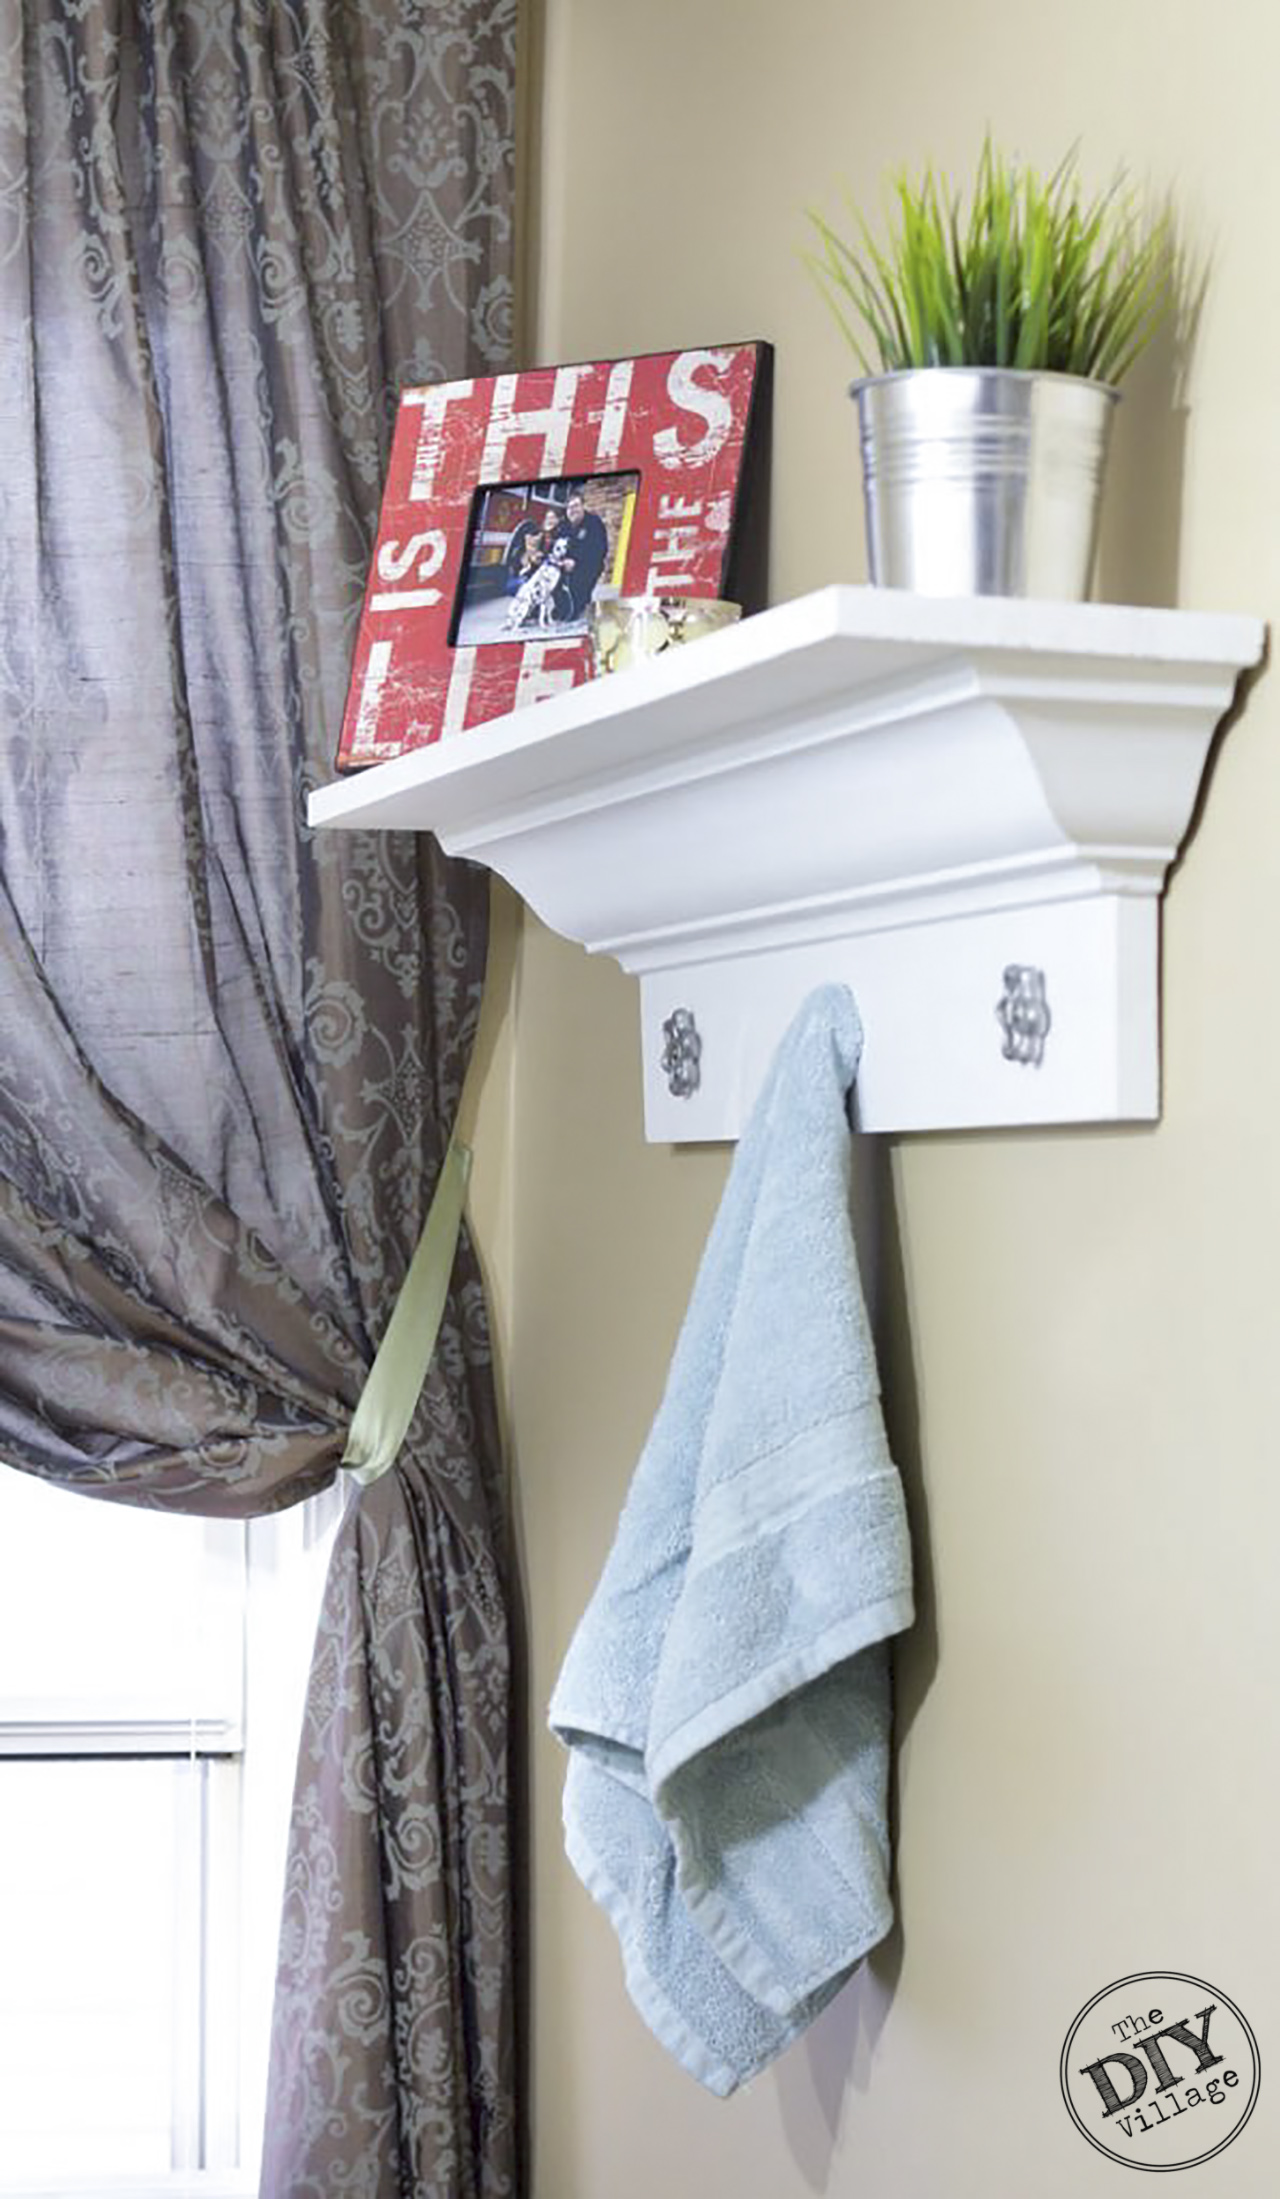 DIY Crown Molding Shelf Decorative-Crown-Molding-Shelf #diy #homedeocr #homeimprovement